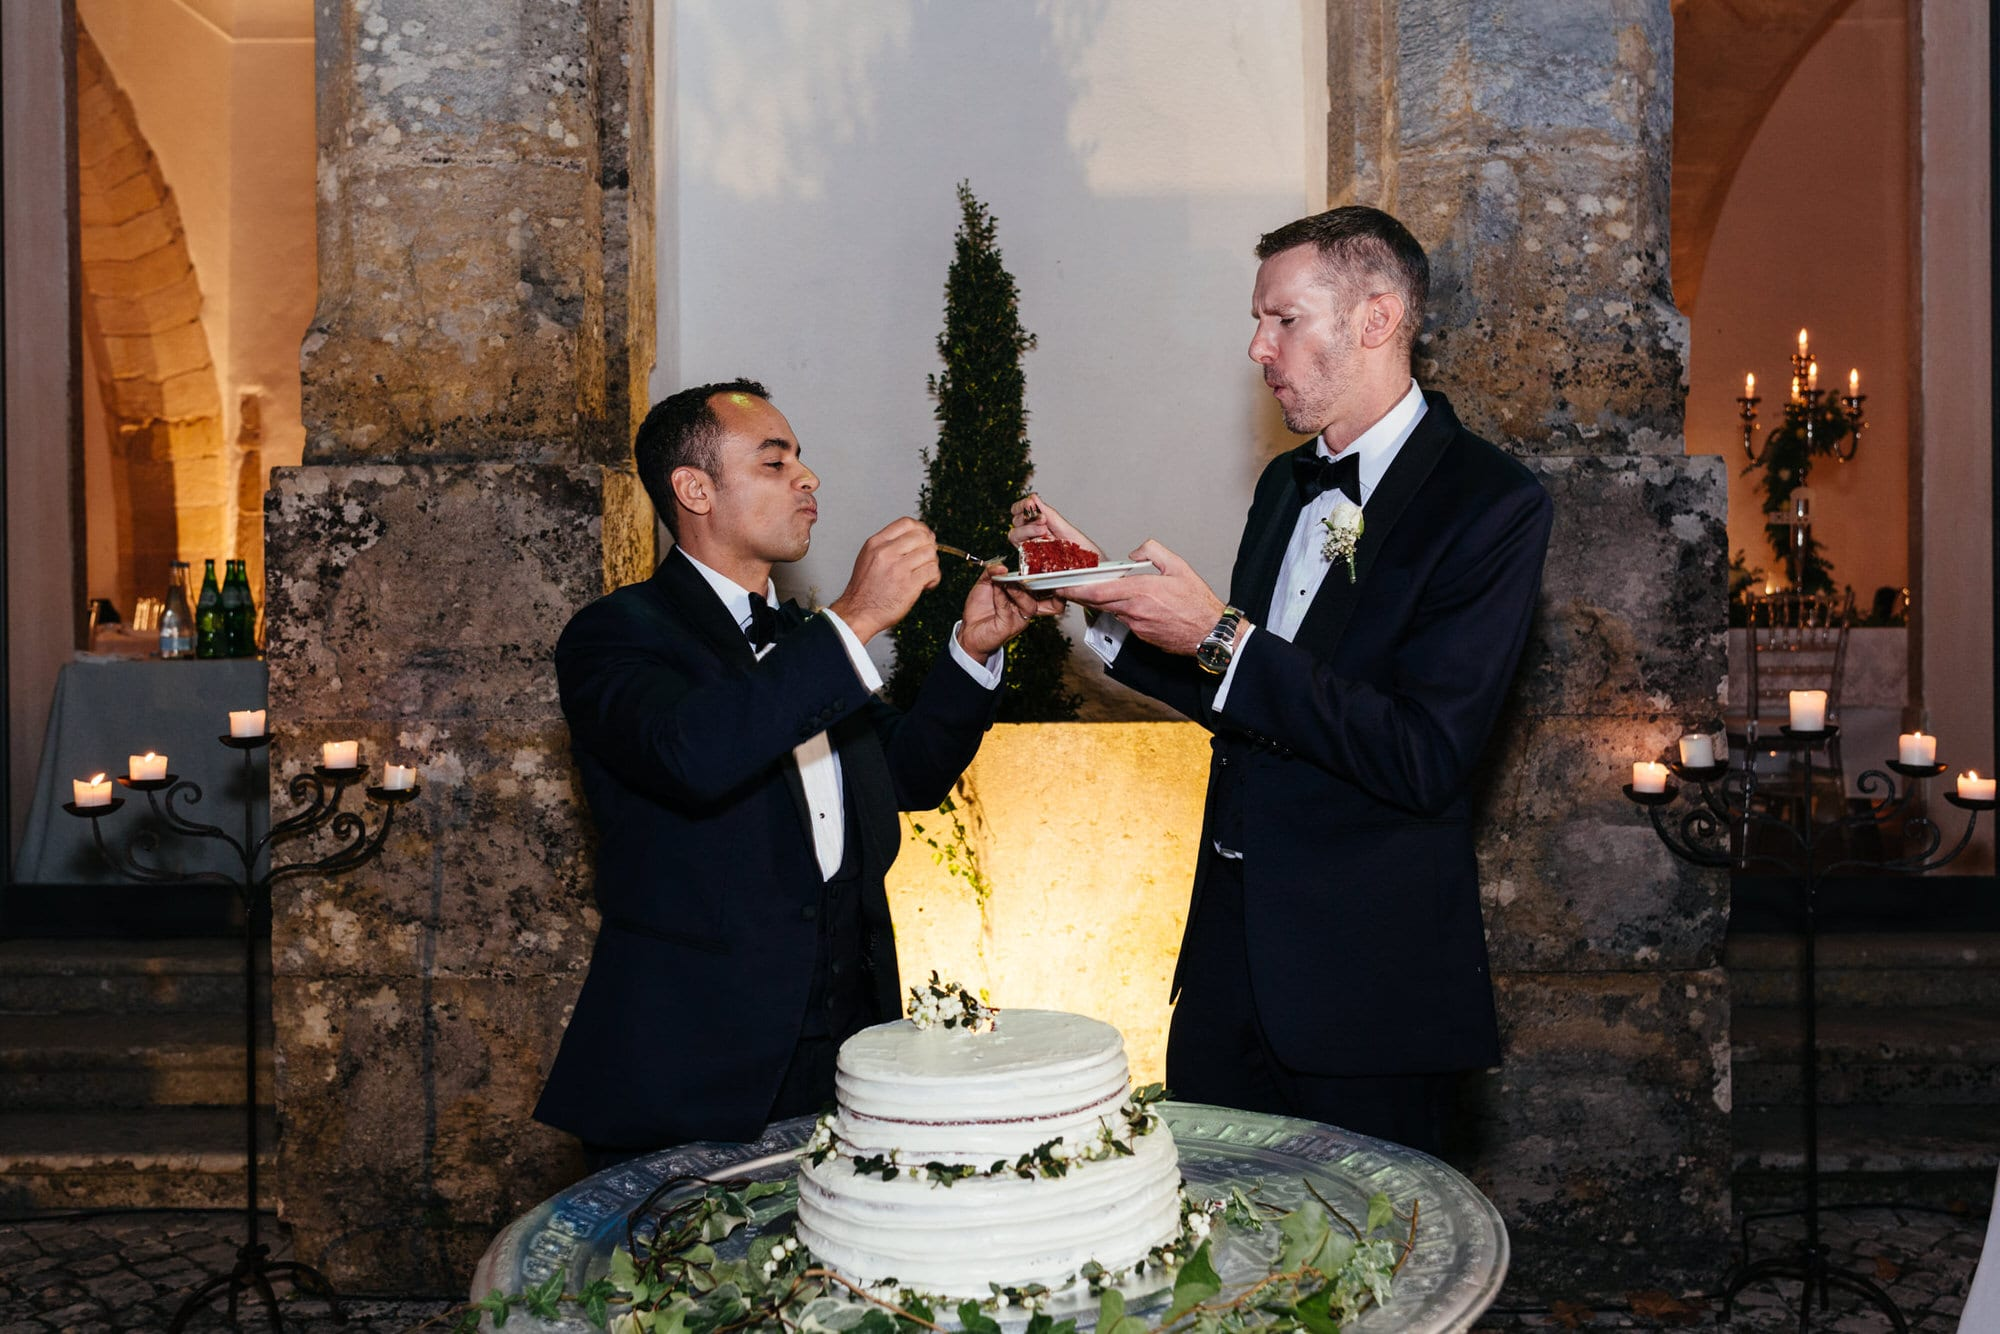 Grooms eating the wedding cake on their wedding day in Lisbon, Portugal